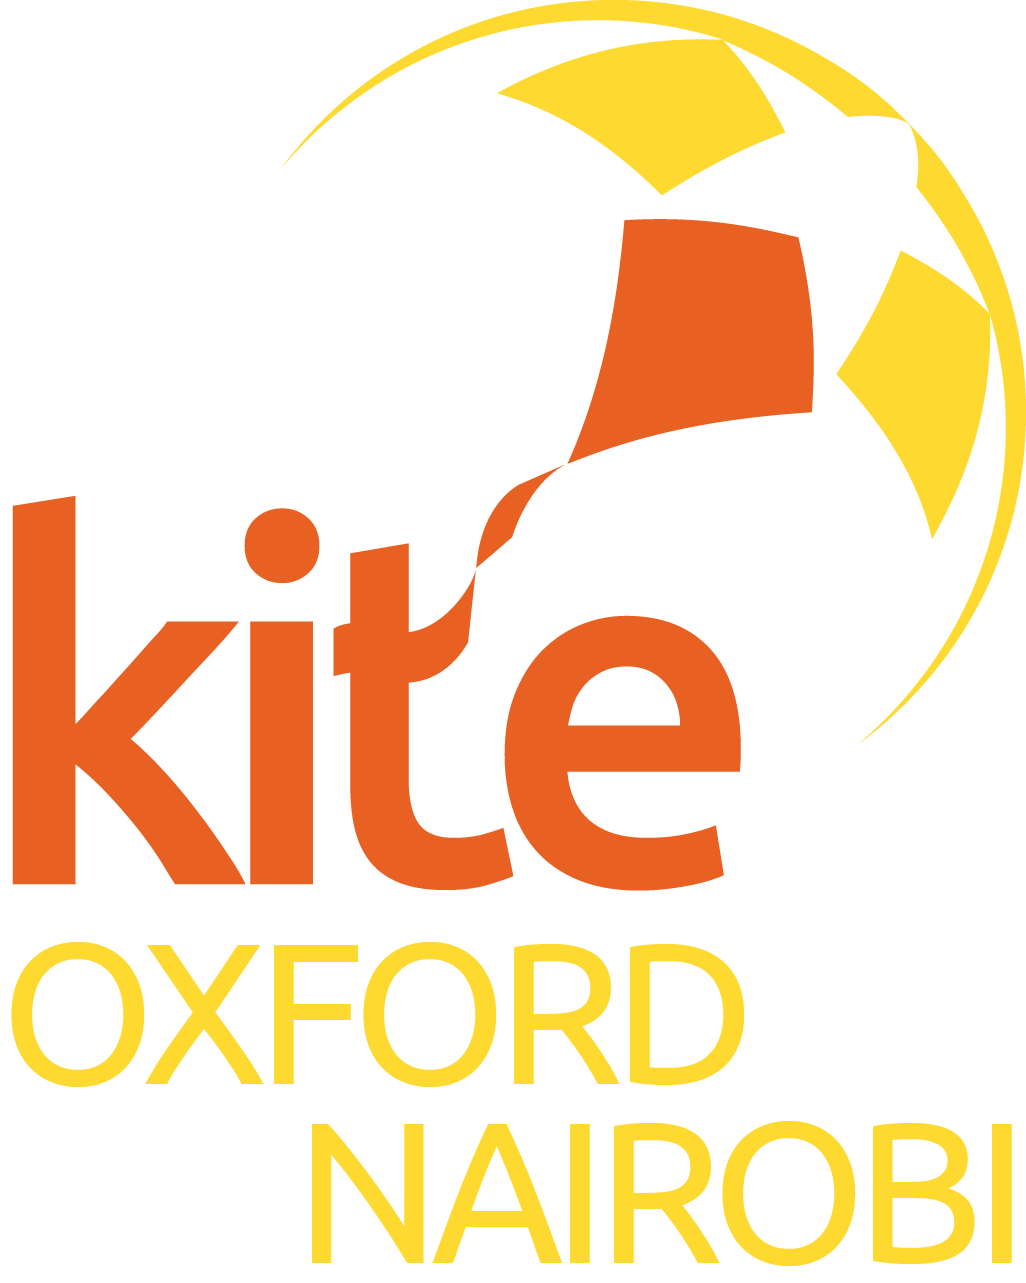 Kite Oxford-Nairobi